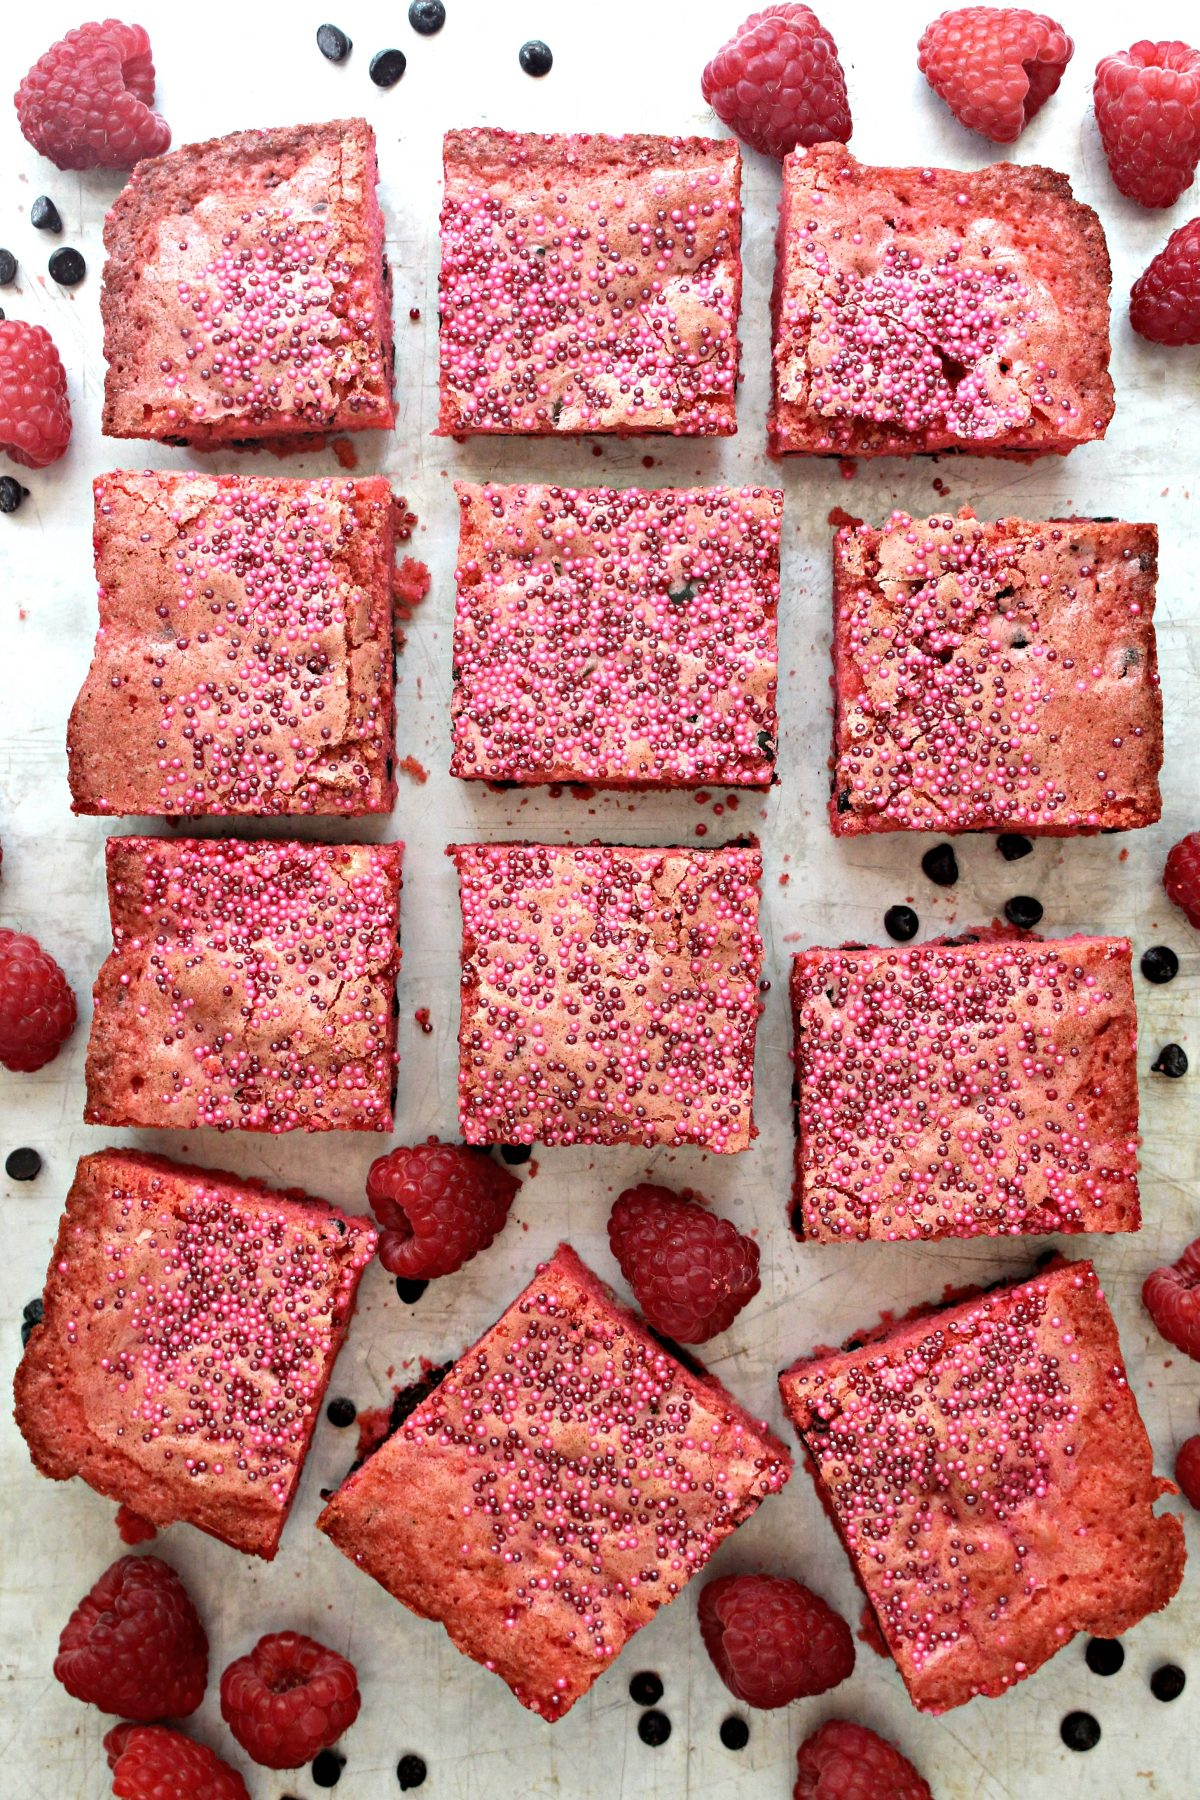 Raspberry Chocolate Chip Bars cut into squares on background sprinkled with chocolate chips and raspberries.